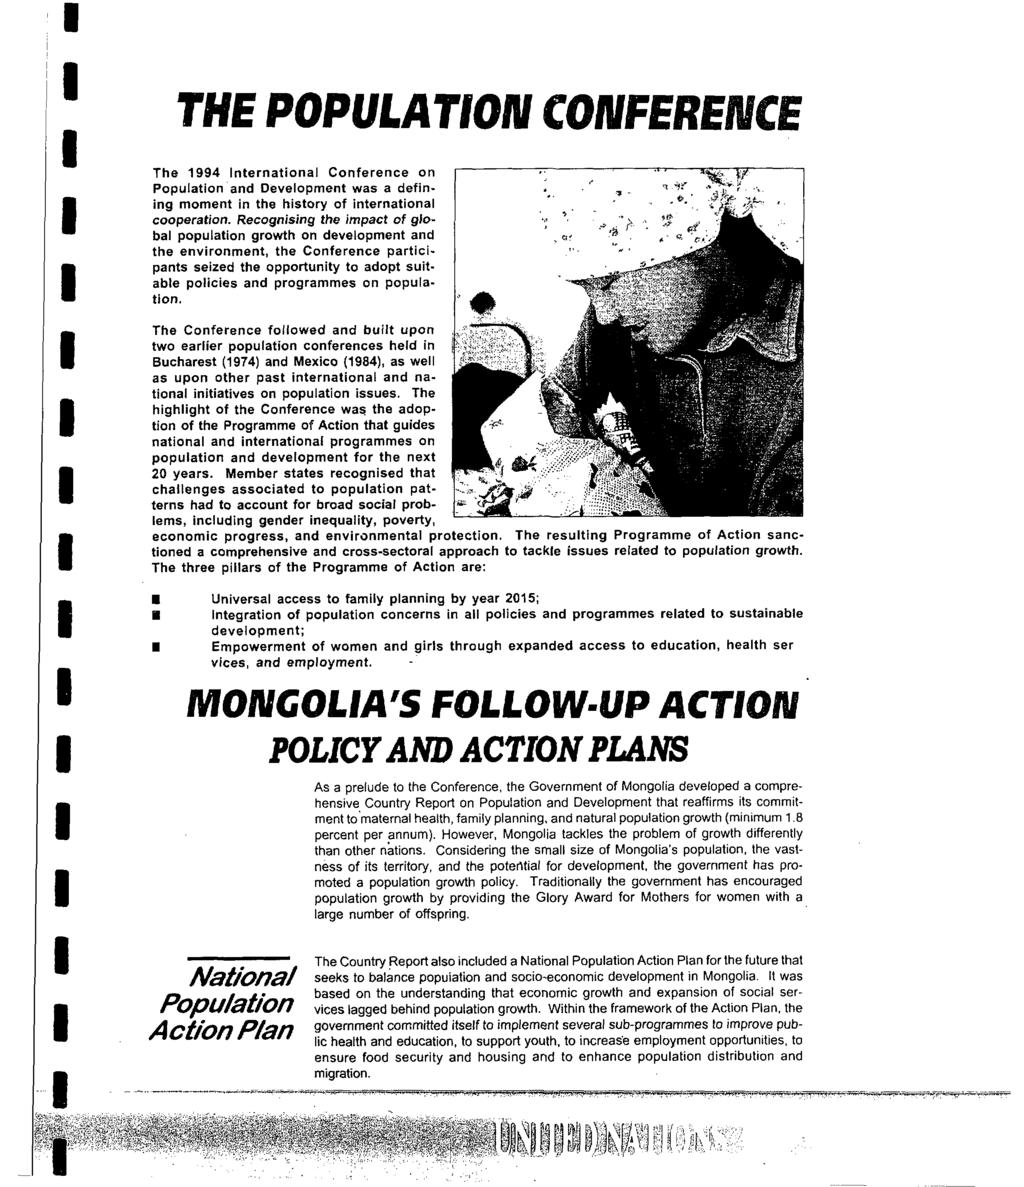 THE POPULATON CONFERENCE The 1994 nternational Conference on Population and Development was a defining moment in the history of international cooperation.